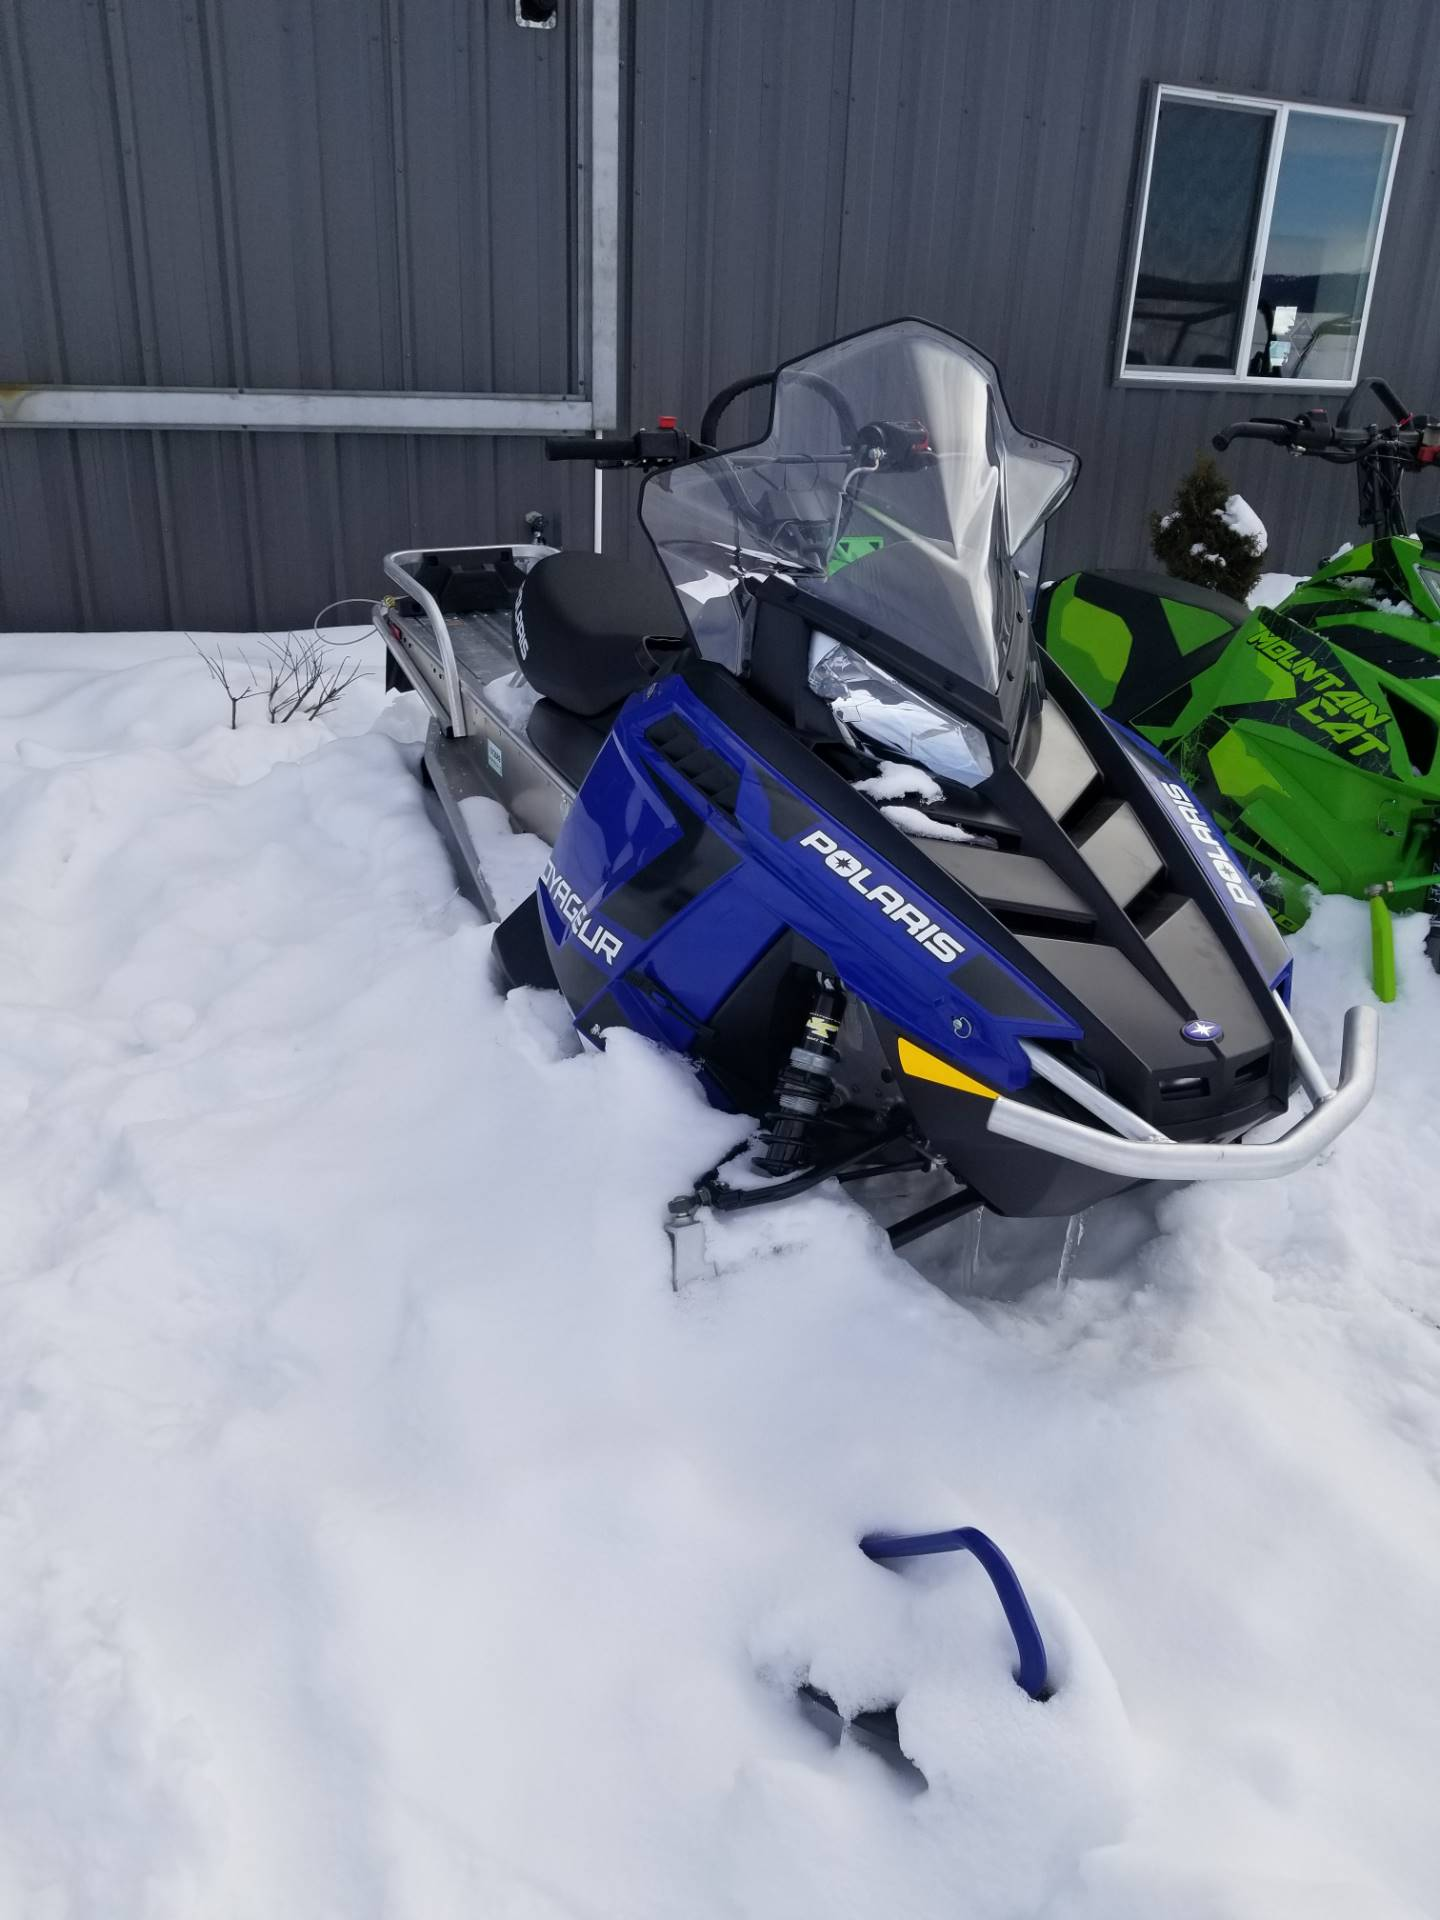 2019 Polaris 550 Voyageur 155 ES in Cottonwood, Idaho - Photo 2